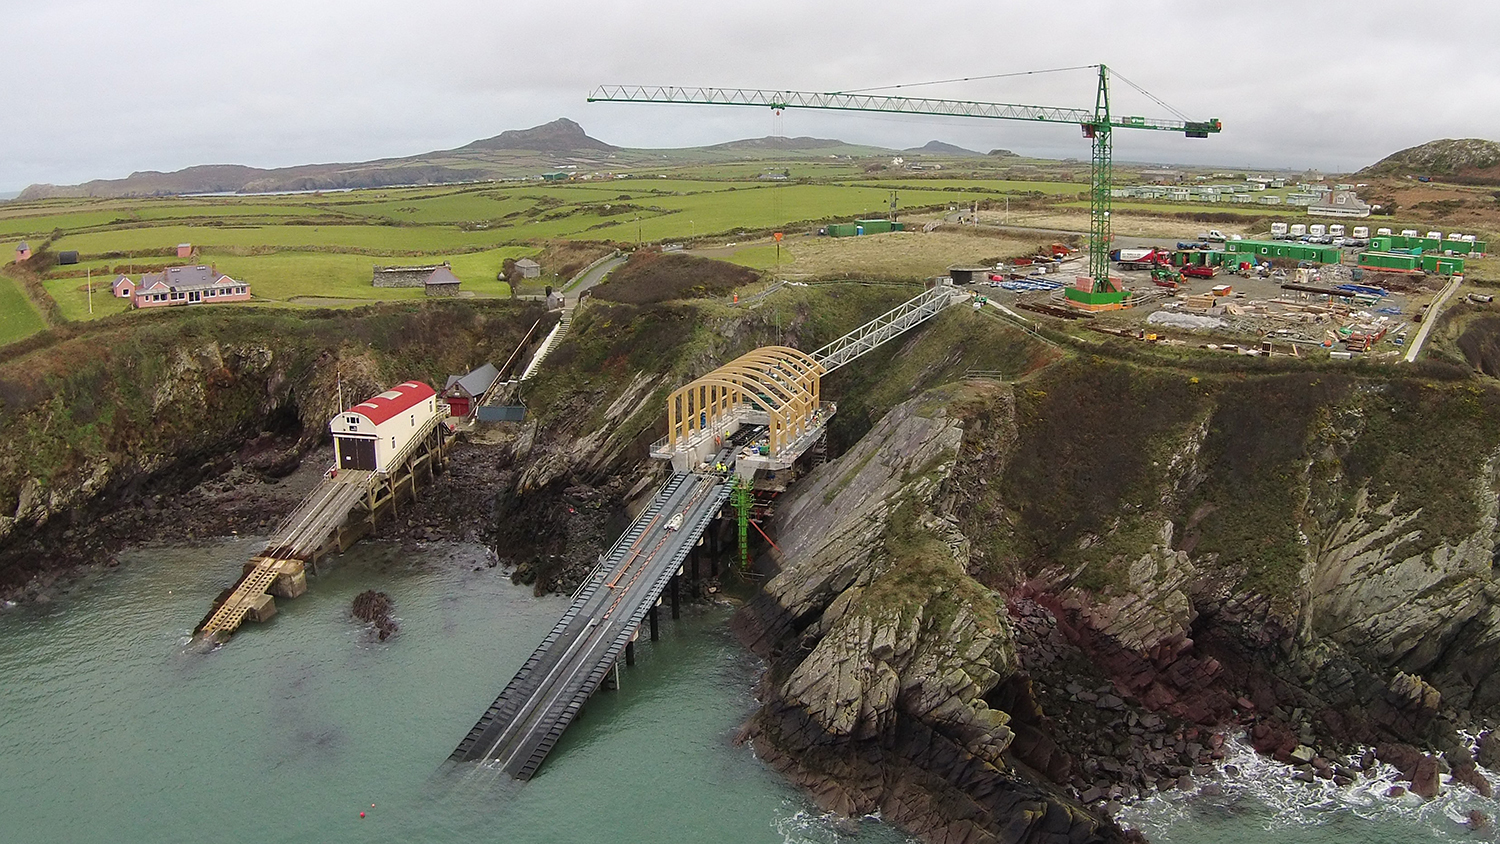 Aerial view of the old and new lifeboat stations at St Davids